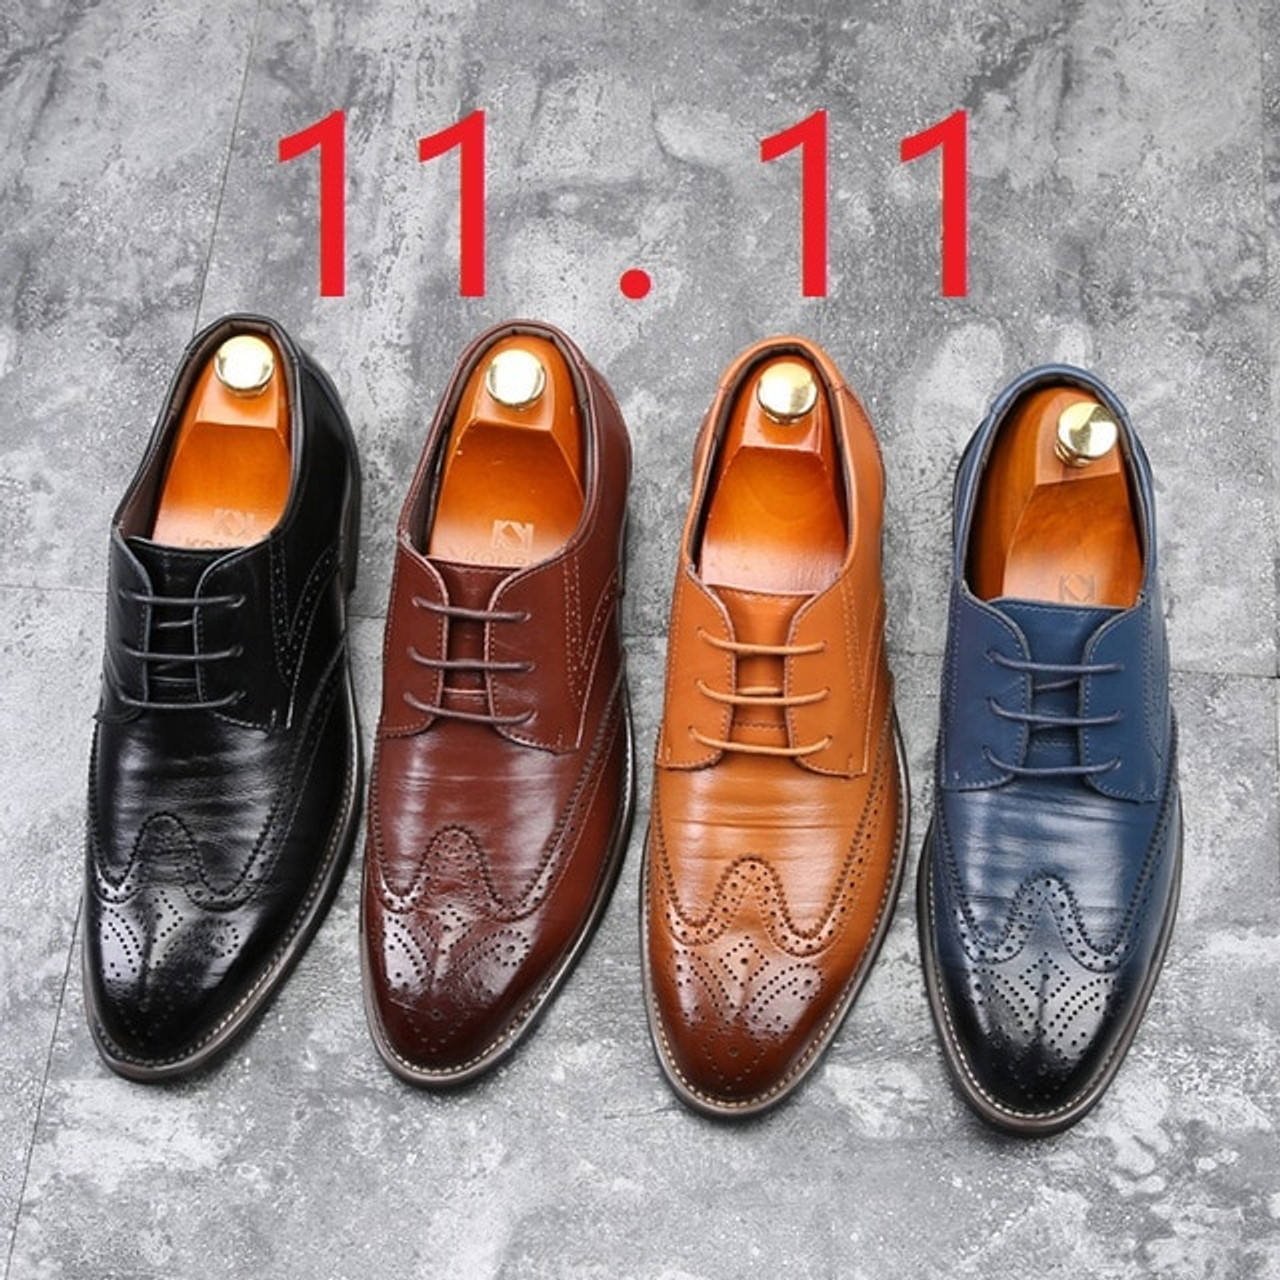 Mens Oxford Leather Dress Shoes Modern//Classic / Brogues Lace Ups Pig/'s Leather Insole Rubber Outsole Brown Leather Uppers